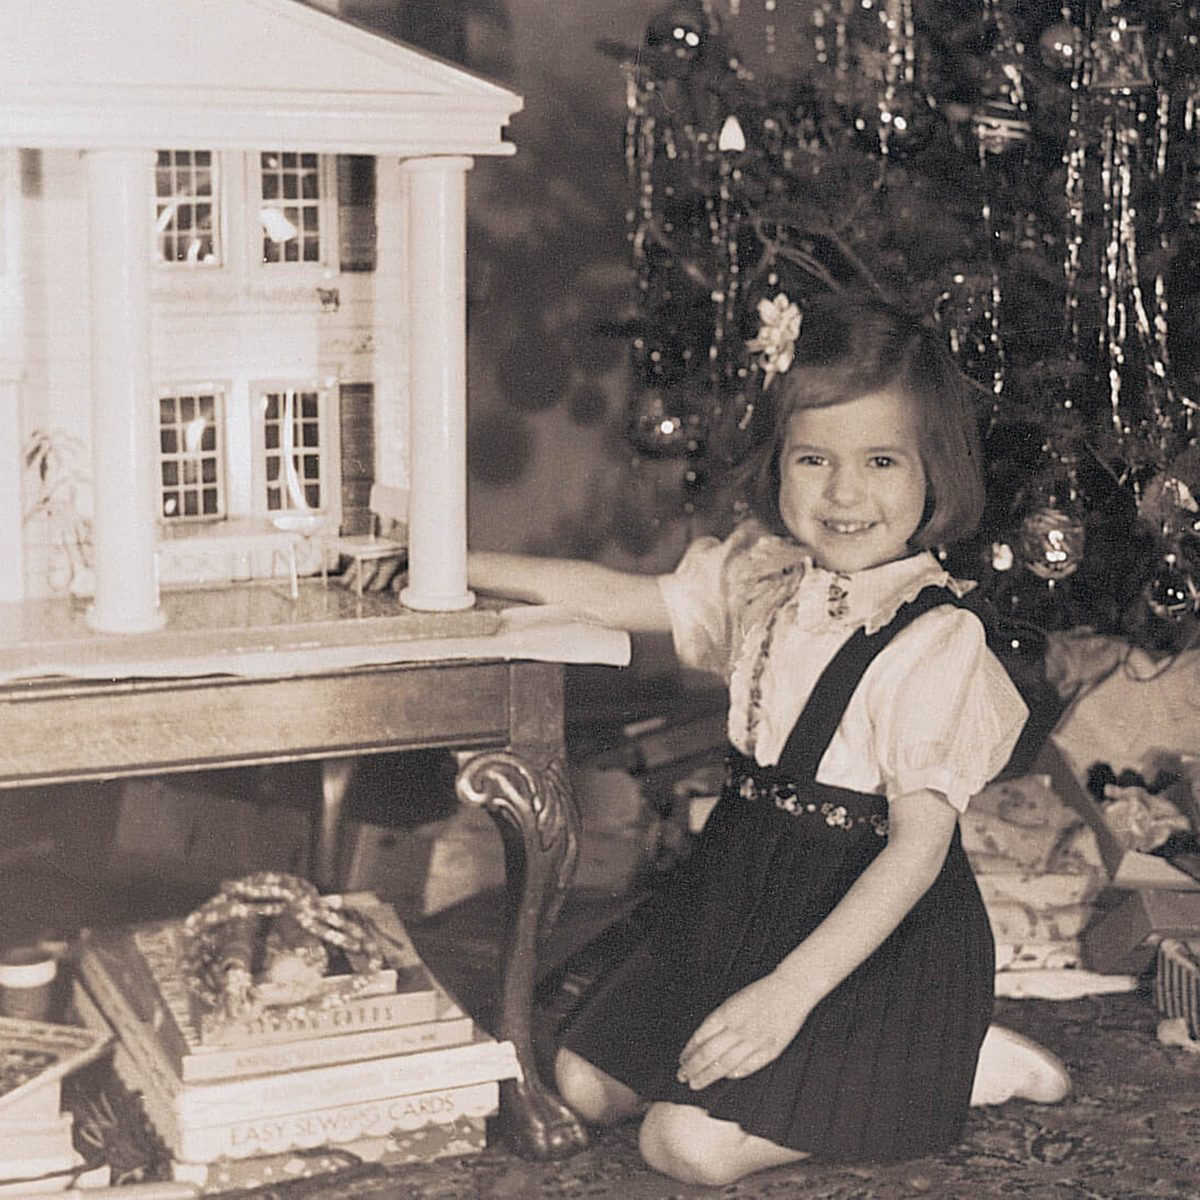 Black and white photo of a young girl beside a dollhouse